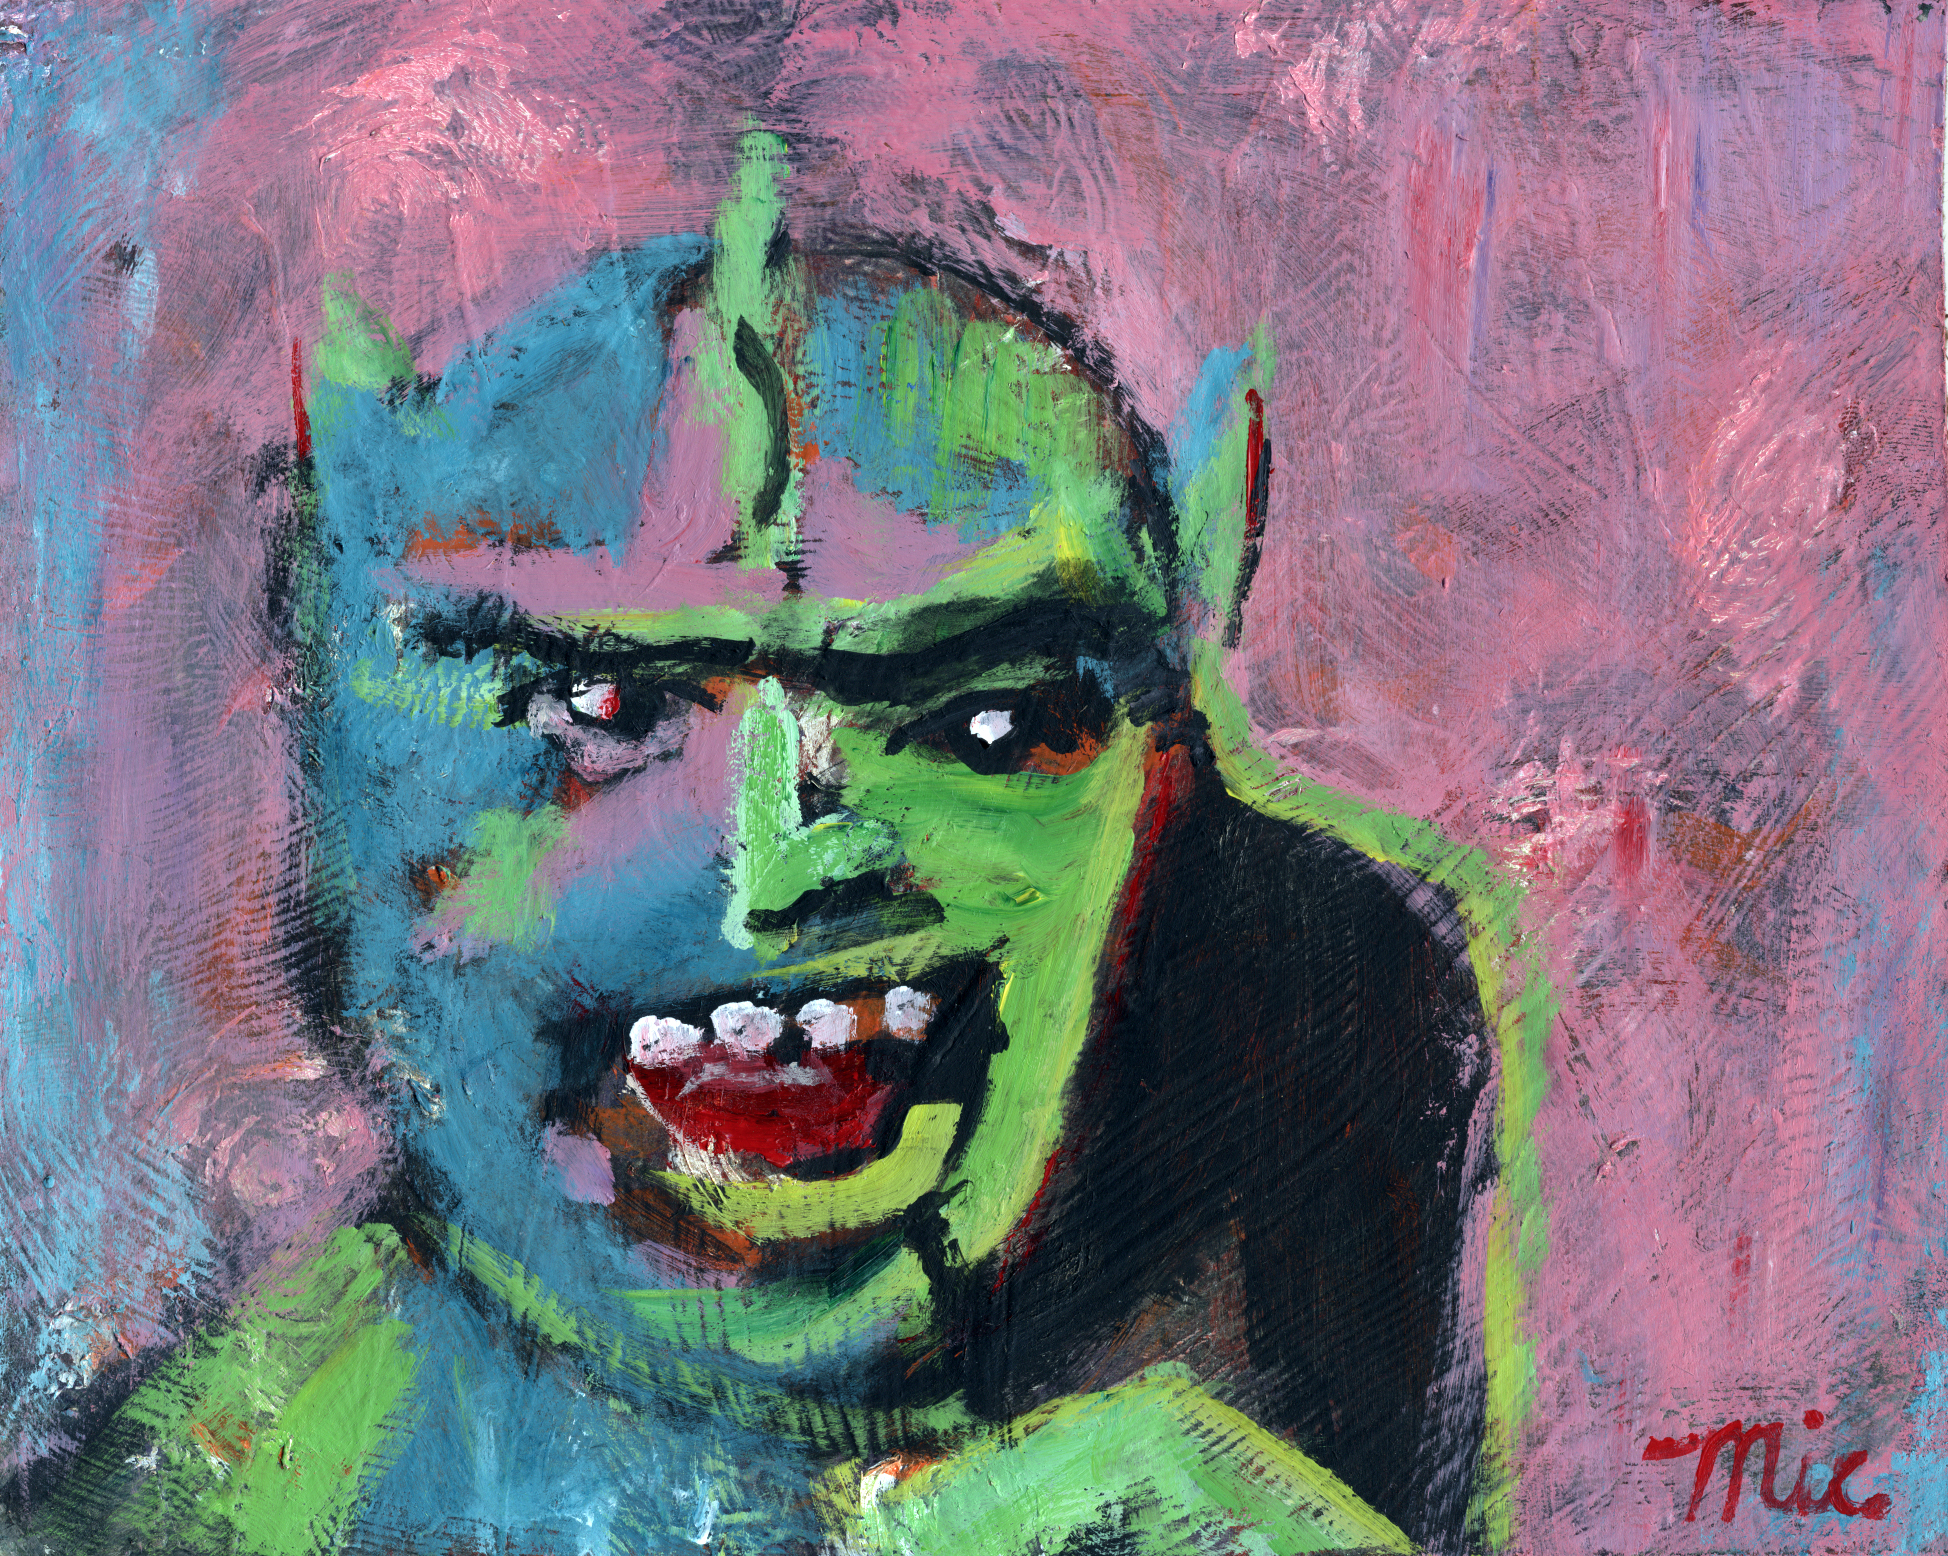 Absinthe Man - Acrylic on Canvas Private collection Robb WiersingGiclee Limited Edition and canvas prints are available. Please visit the prints gallery.